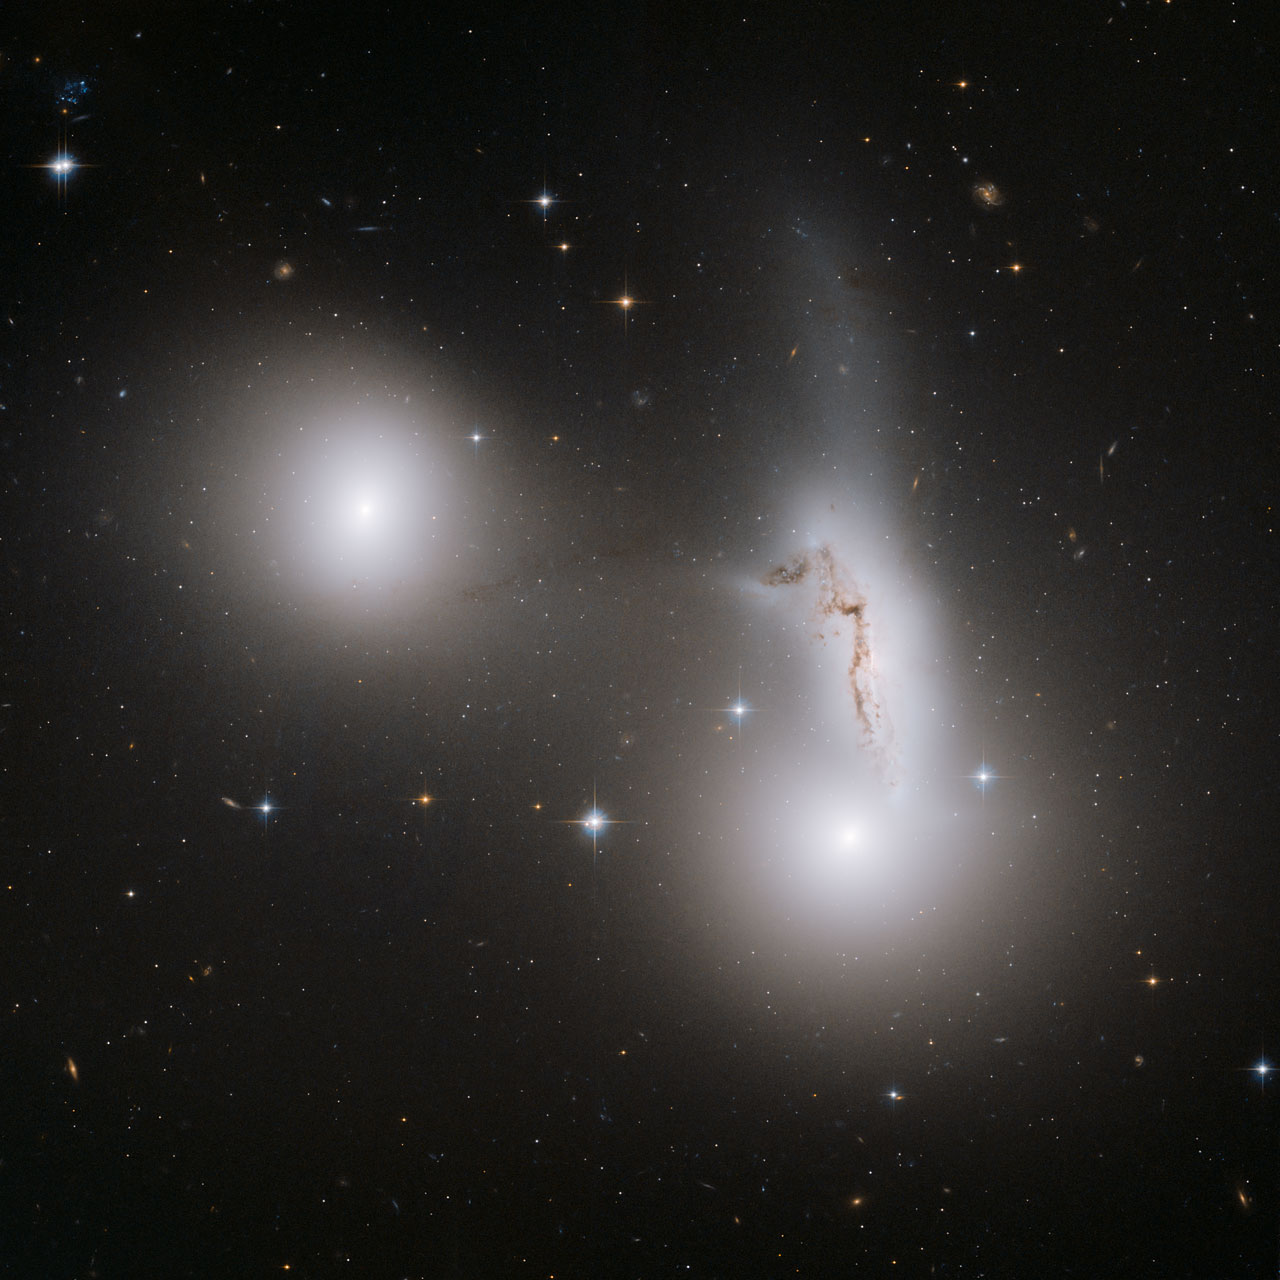 Hickson Compact Group 90 (interacting galaxies)